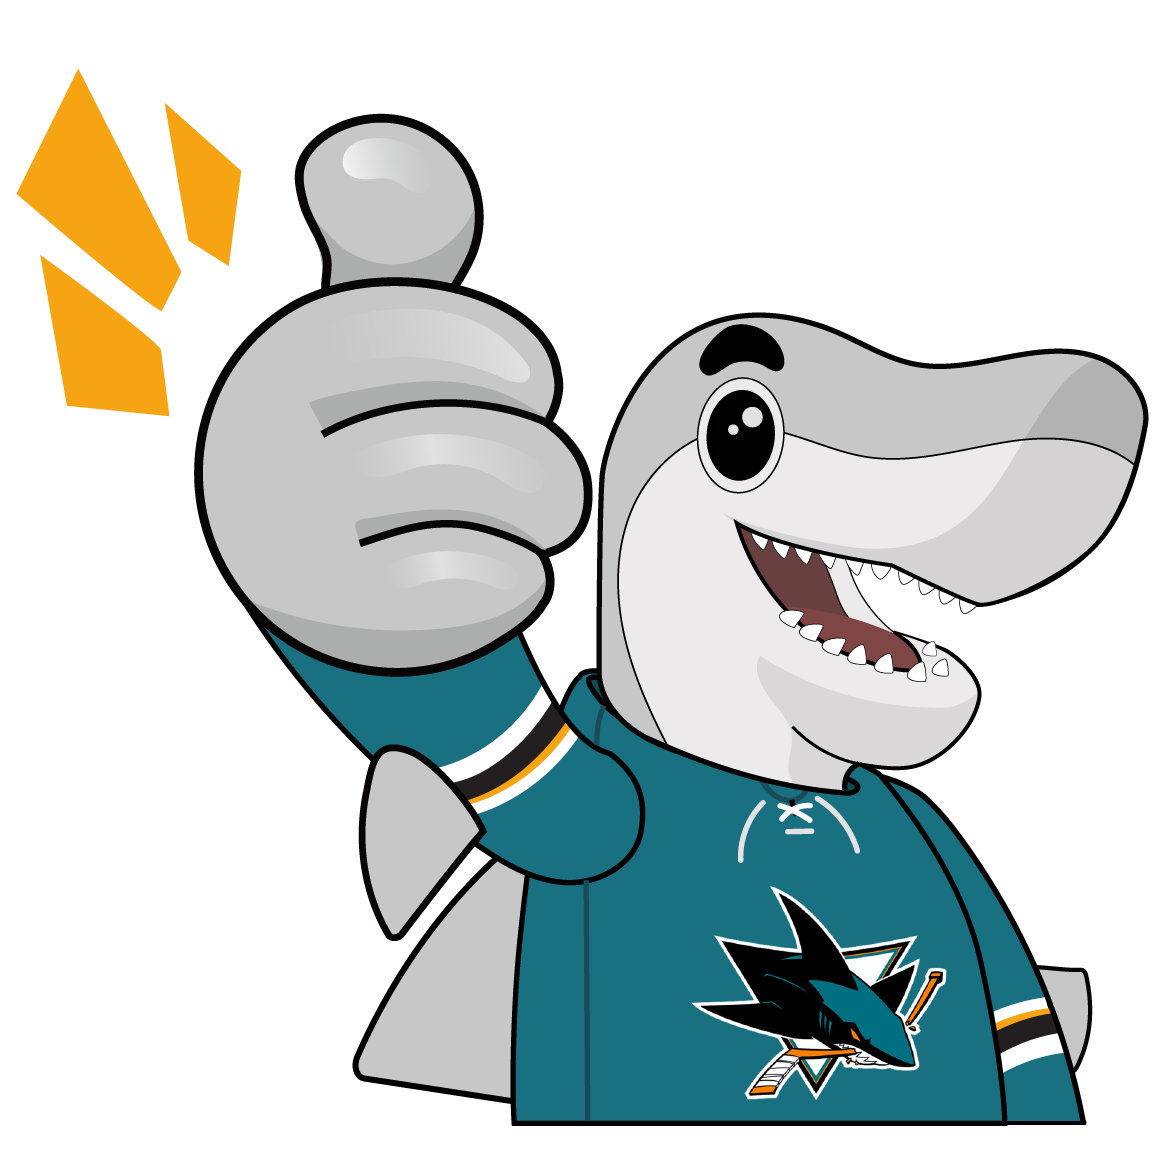 S.J. Sharkie Sticker Pack messages sticker-9